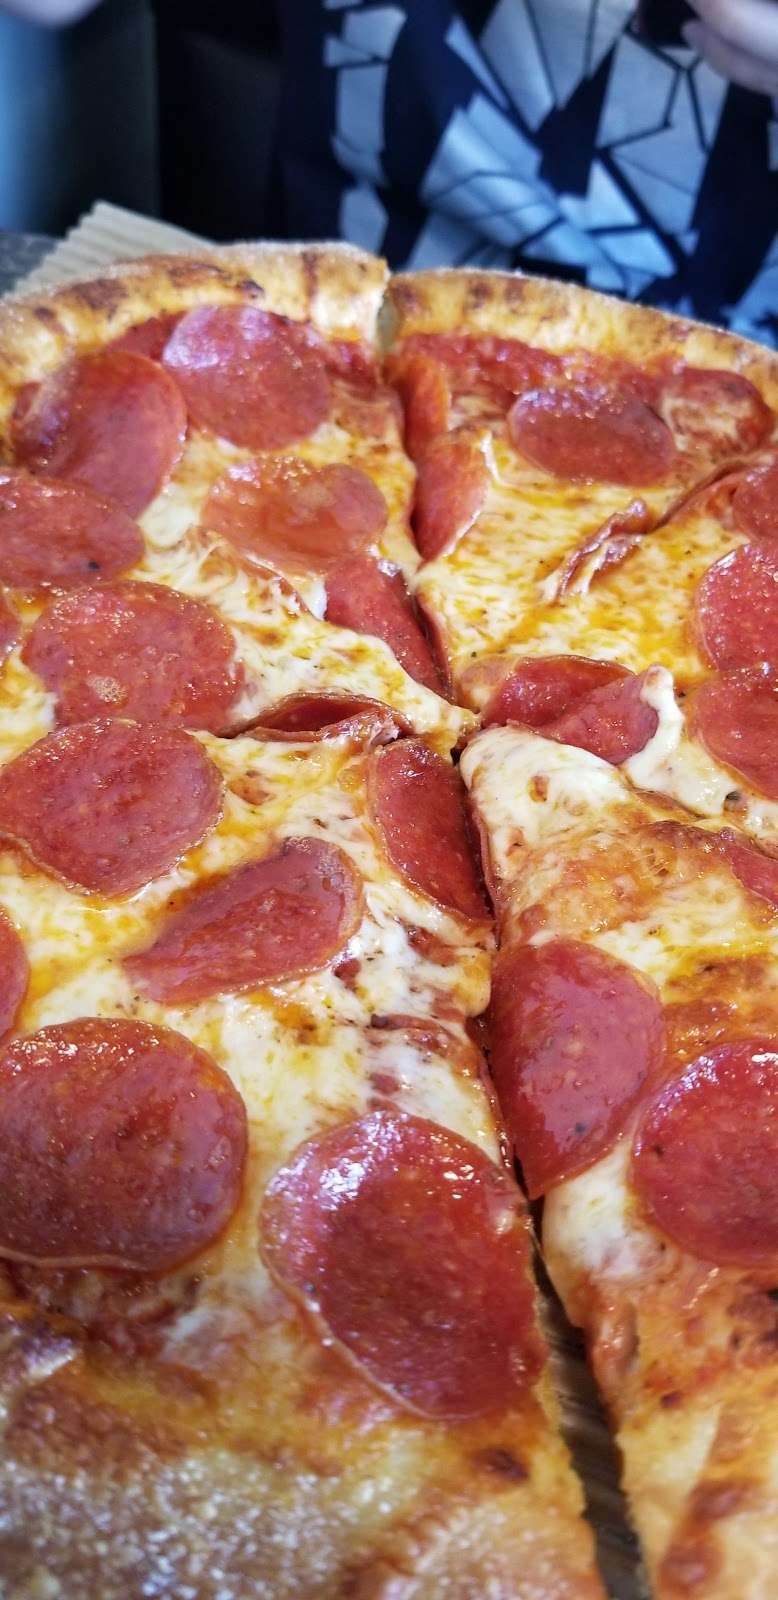 Marcos Pizza - meal delivery    Photo 5 of 9   Address: 1079 W Round Grove Rd, Lewisville, TX 75067, USA   Phone: (972) 221-5200